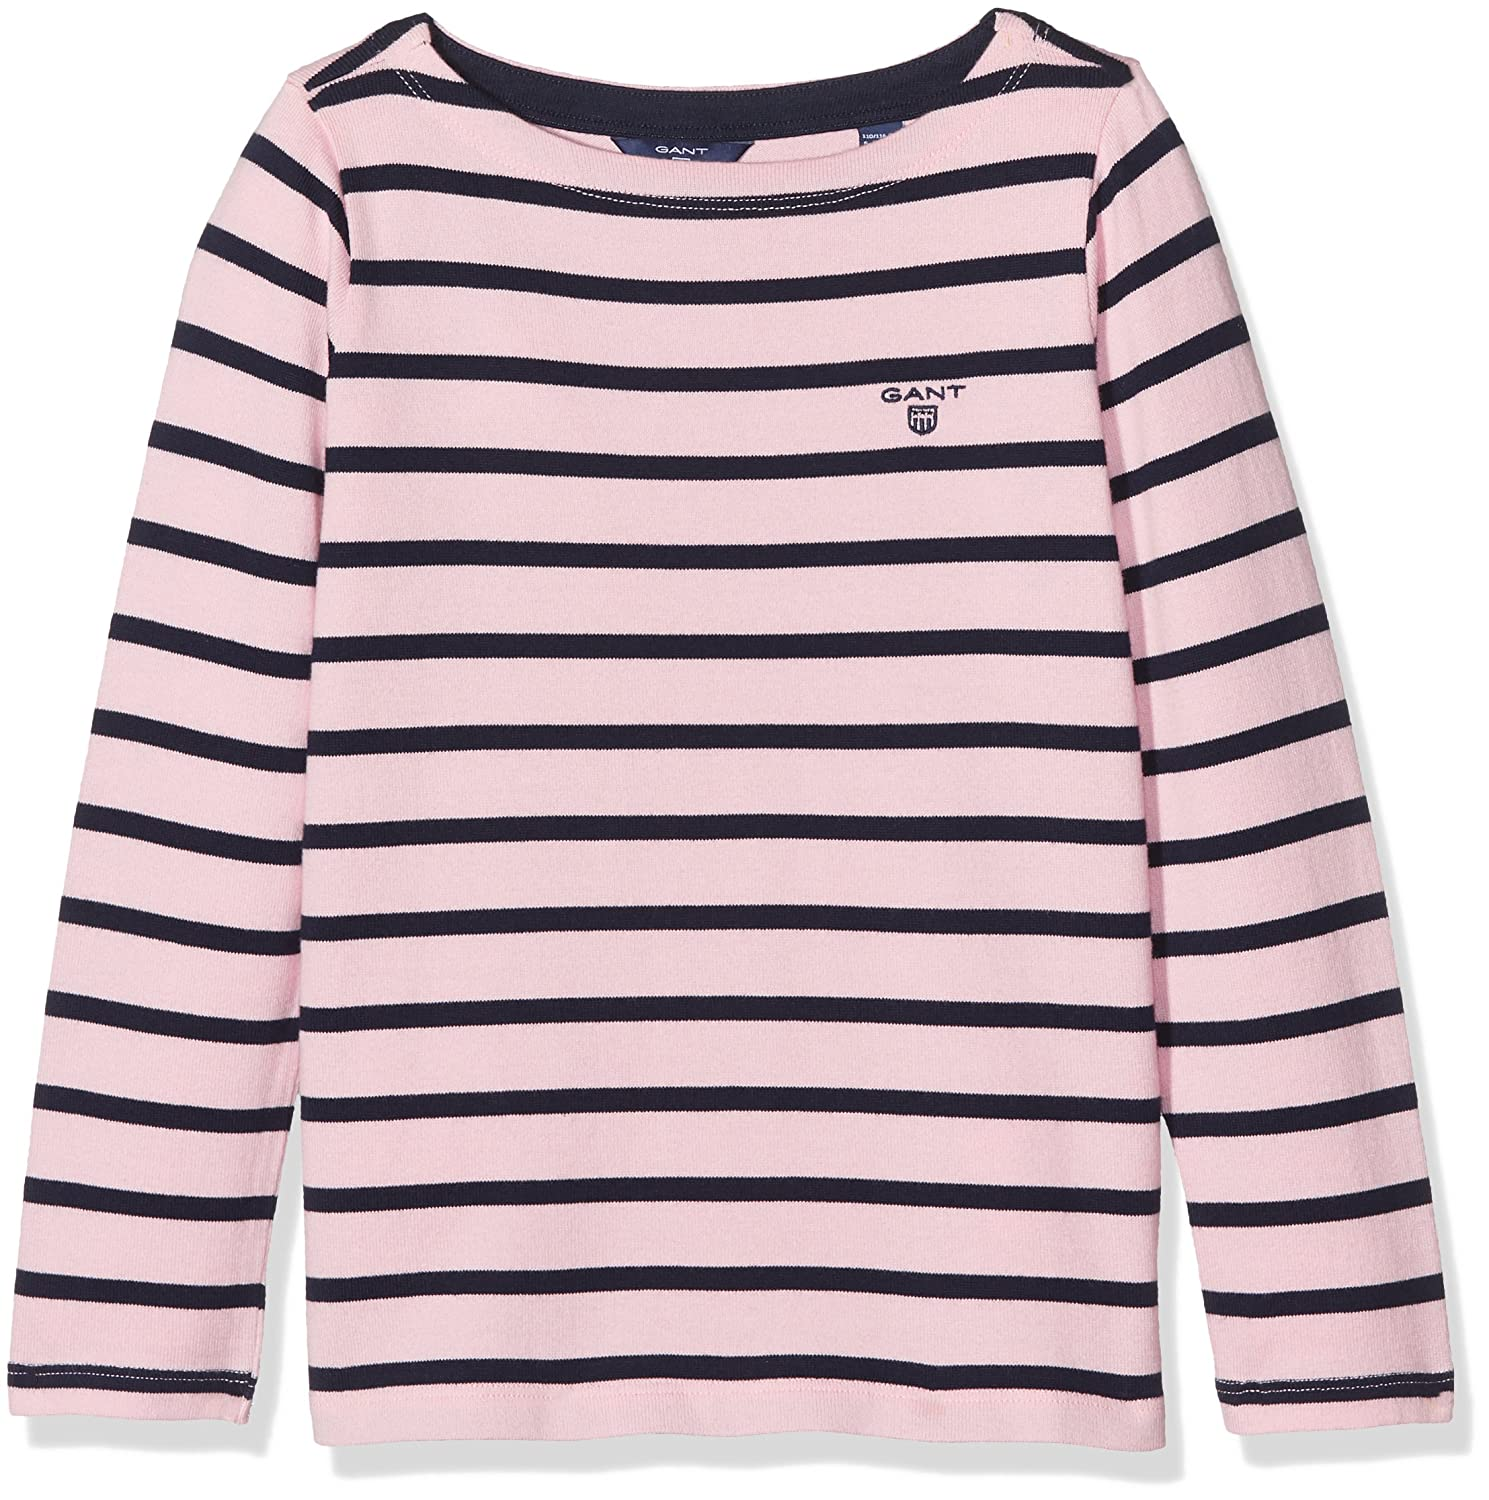 Gant Girl's Breton Boatneck Sweater Long Sleeve Top: Amazon.co.uk: Clothing